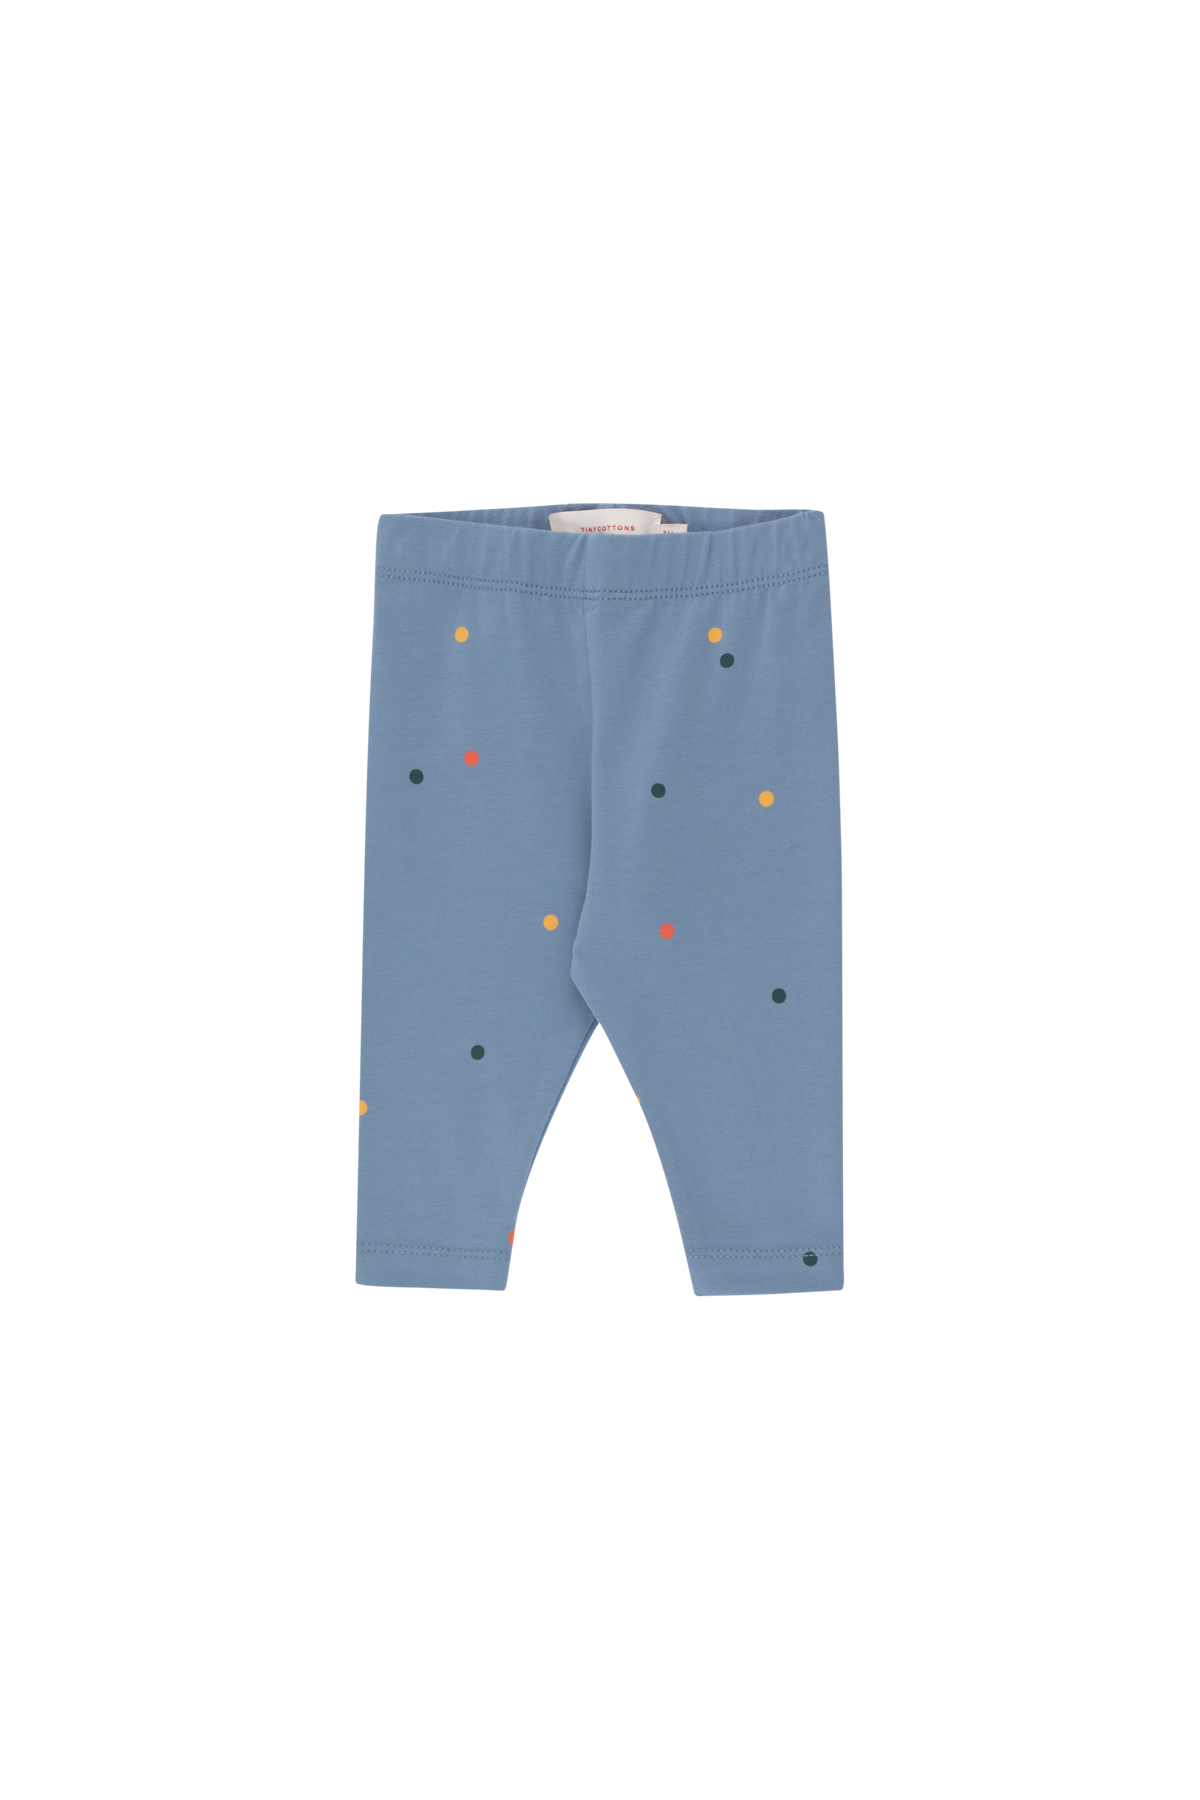 tinycottons ice cream dots baby pant grey blue